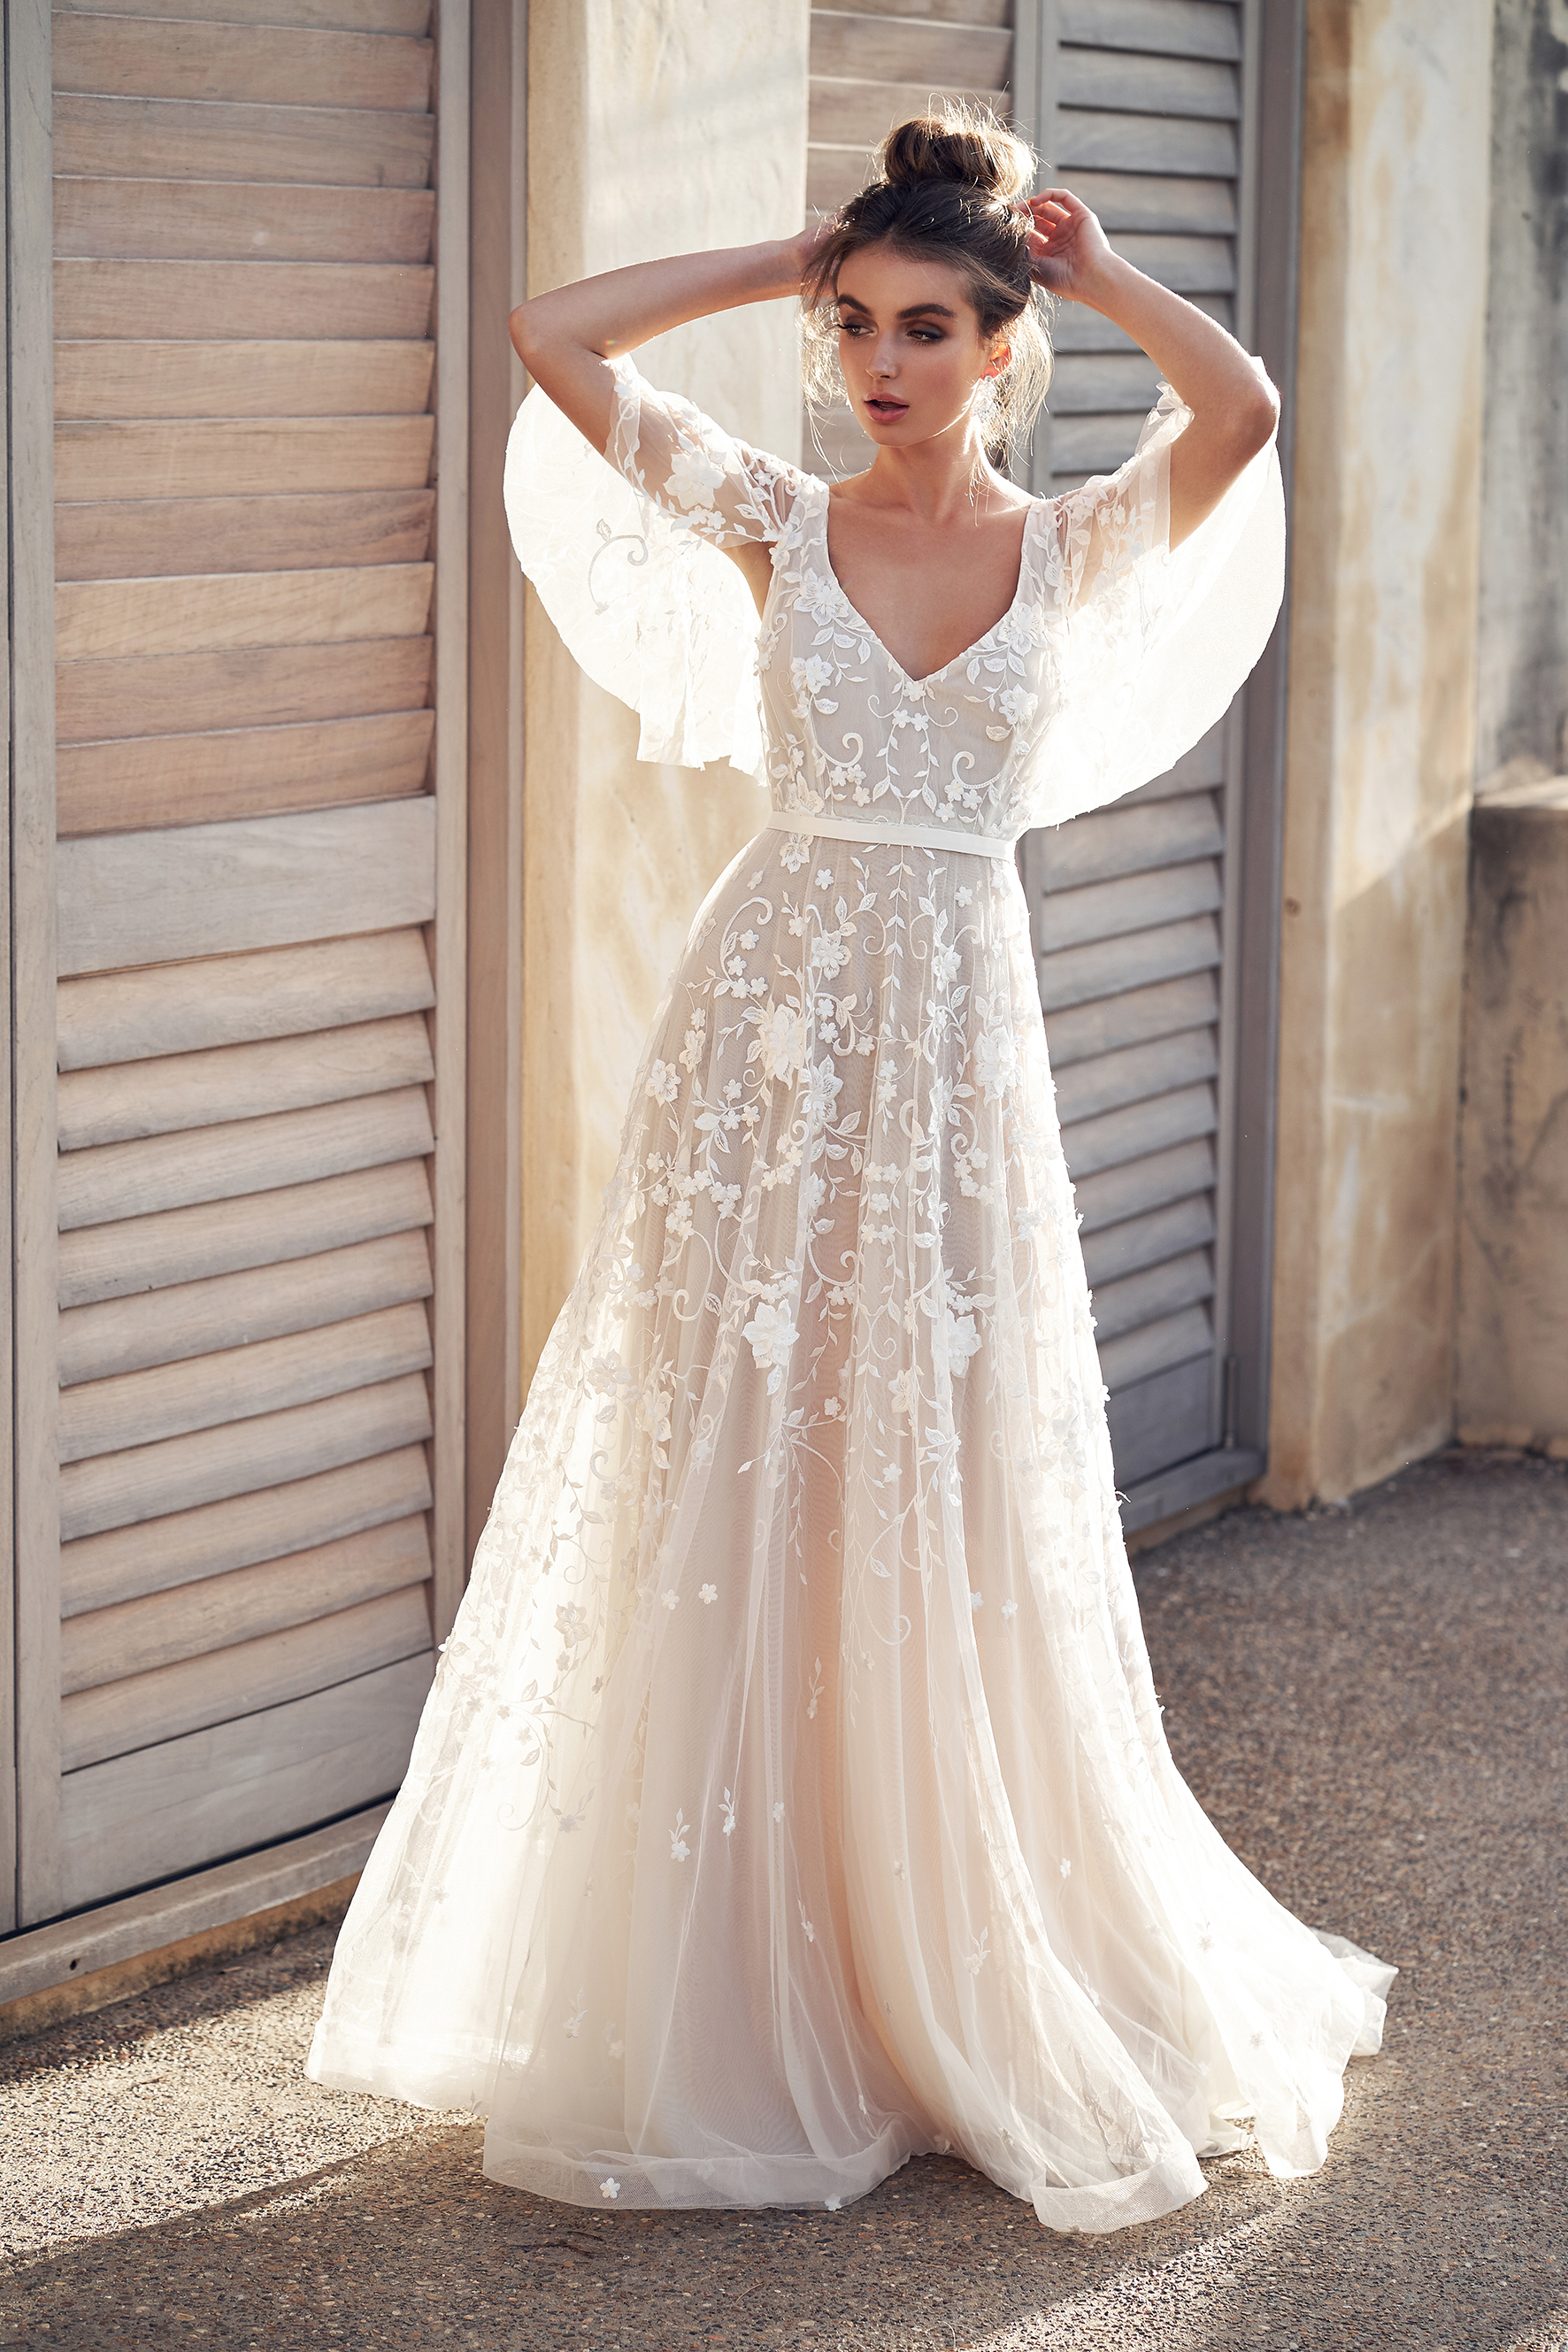 3d Floral Embroidered Vneck Aline Wedding Dress With Draped Sleeves Kleinfeld Bridal: Anna Cbell Wedding Dress Size 16 At Websimilar.org